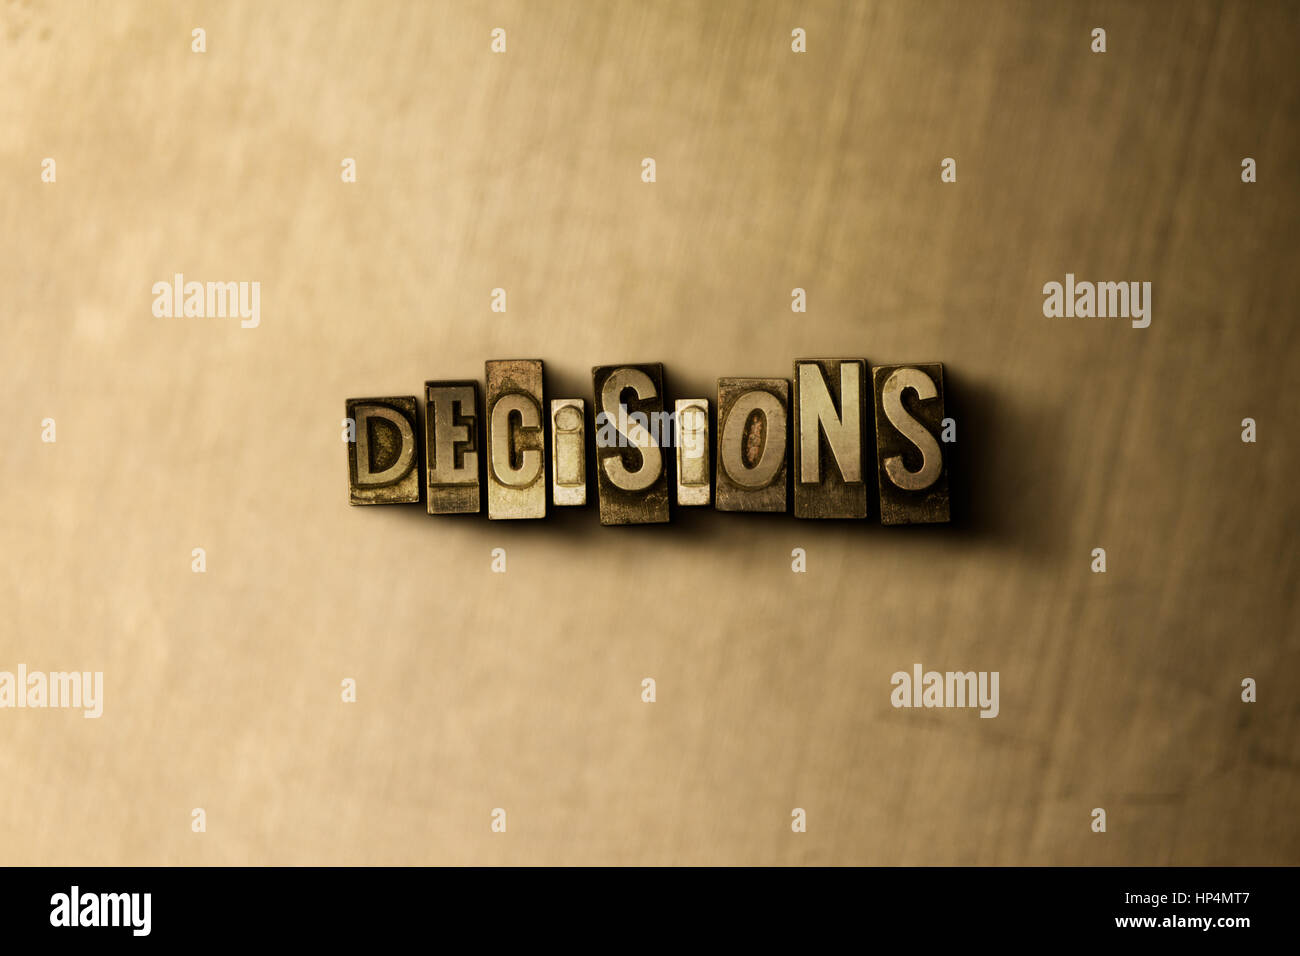 DECISIONS - close-up of grungy vintage typeset word on metal backdrop. Royalty free stock illustration.  Can be - Stock Image